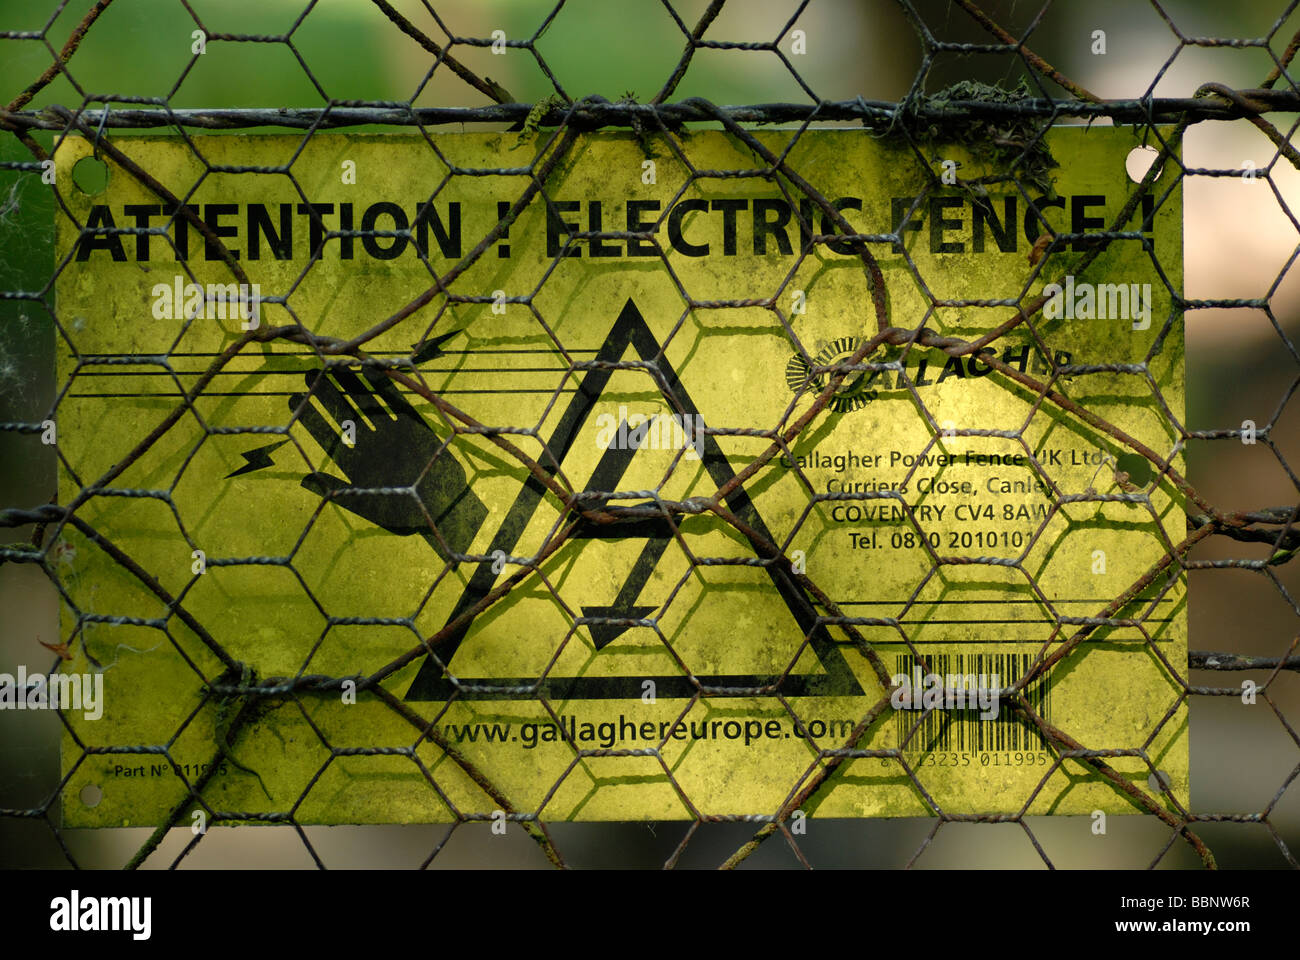 Electric Fence Sign - Stock Image